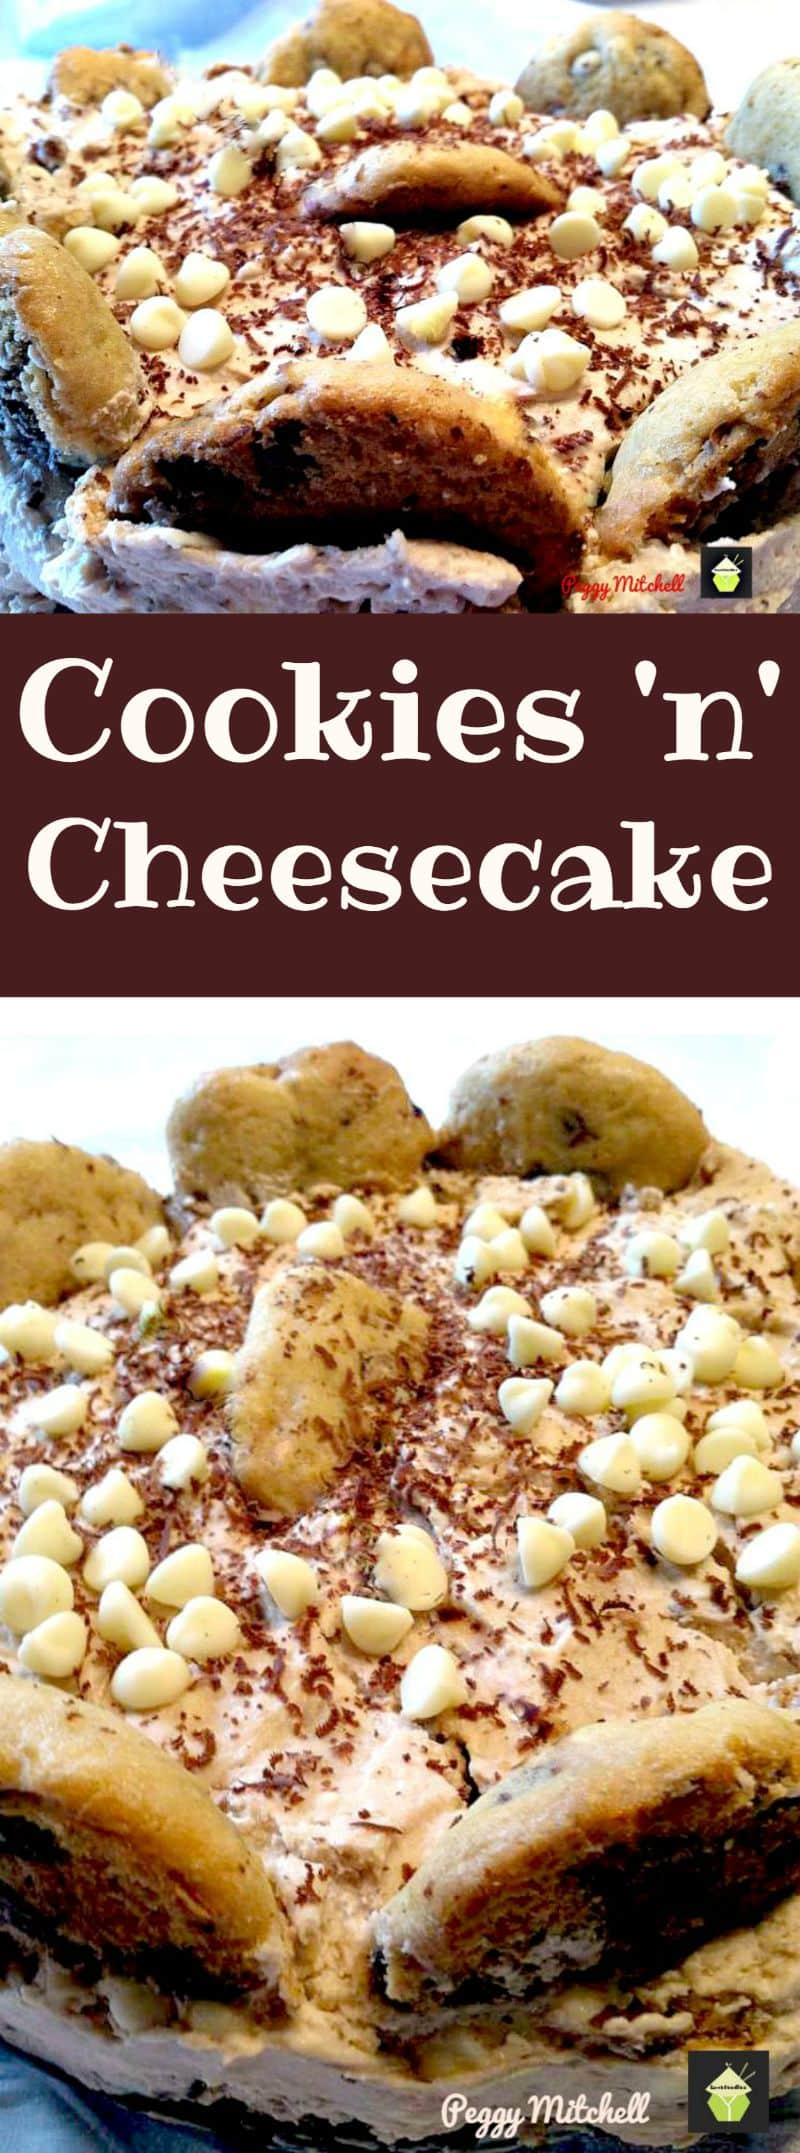 Cookies n Cheesecake. A fun and easy No Bake chocolate and cookie cheesecake and perfect for Cookie Monsters and chocolate fans too!